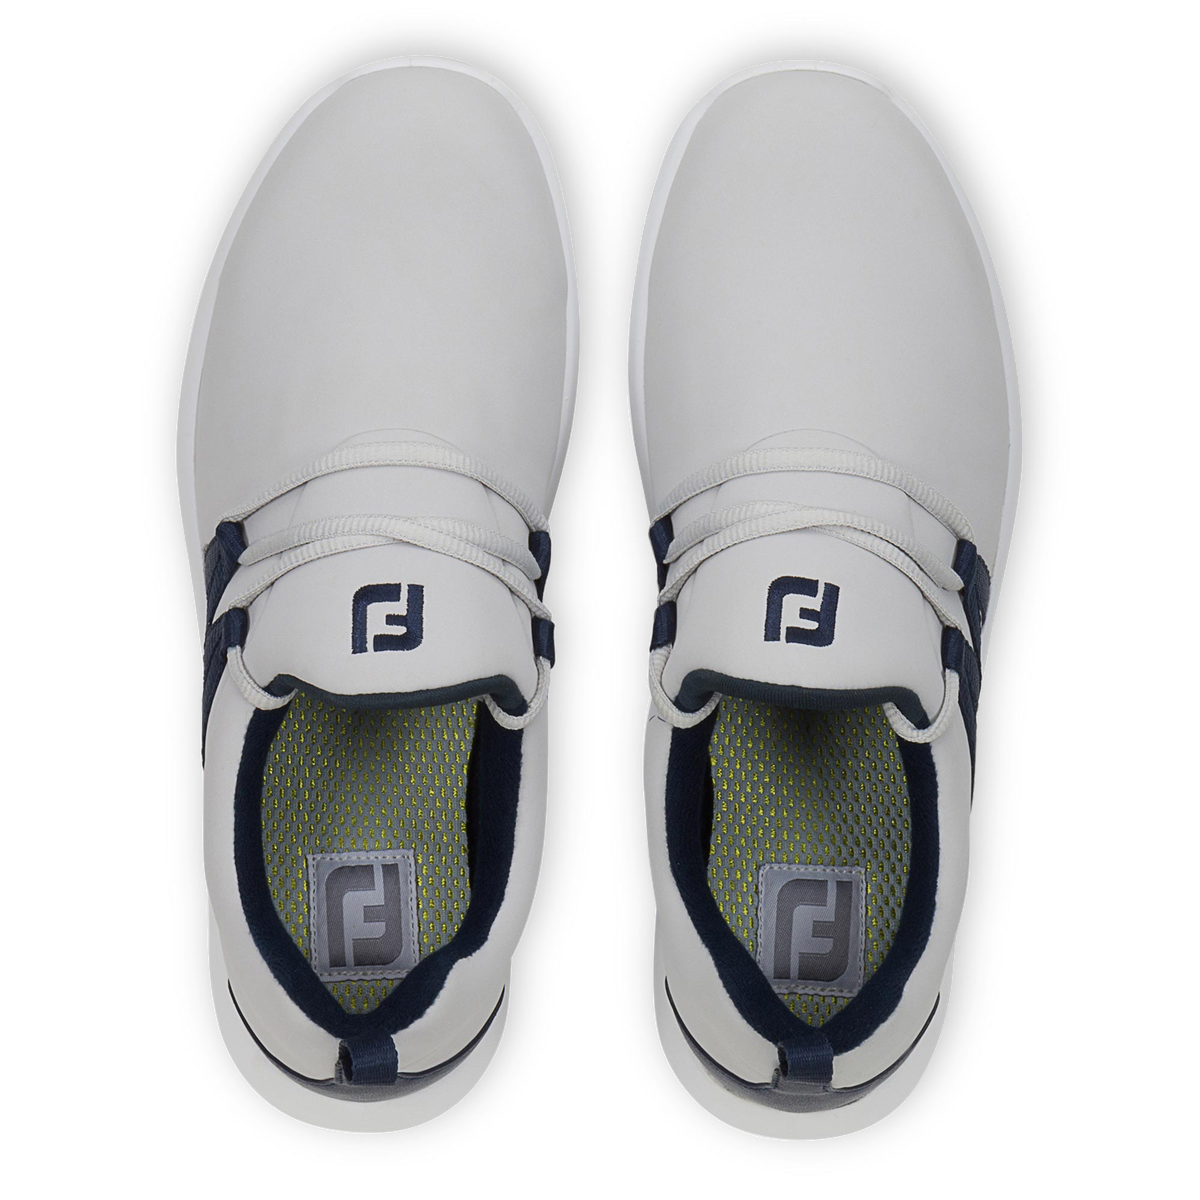 FJ Leisure Slip-on Women